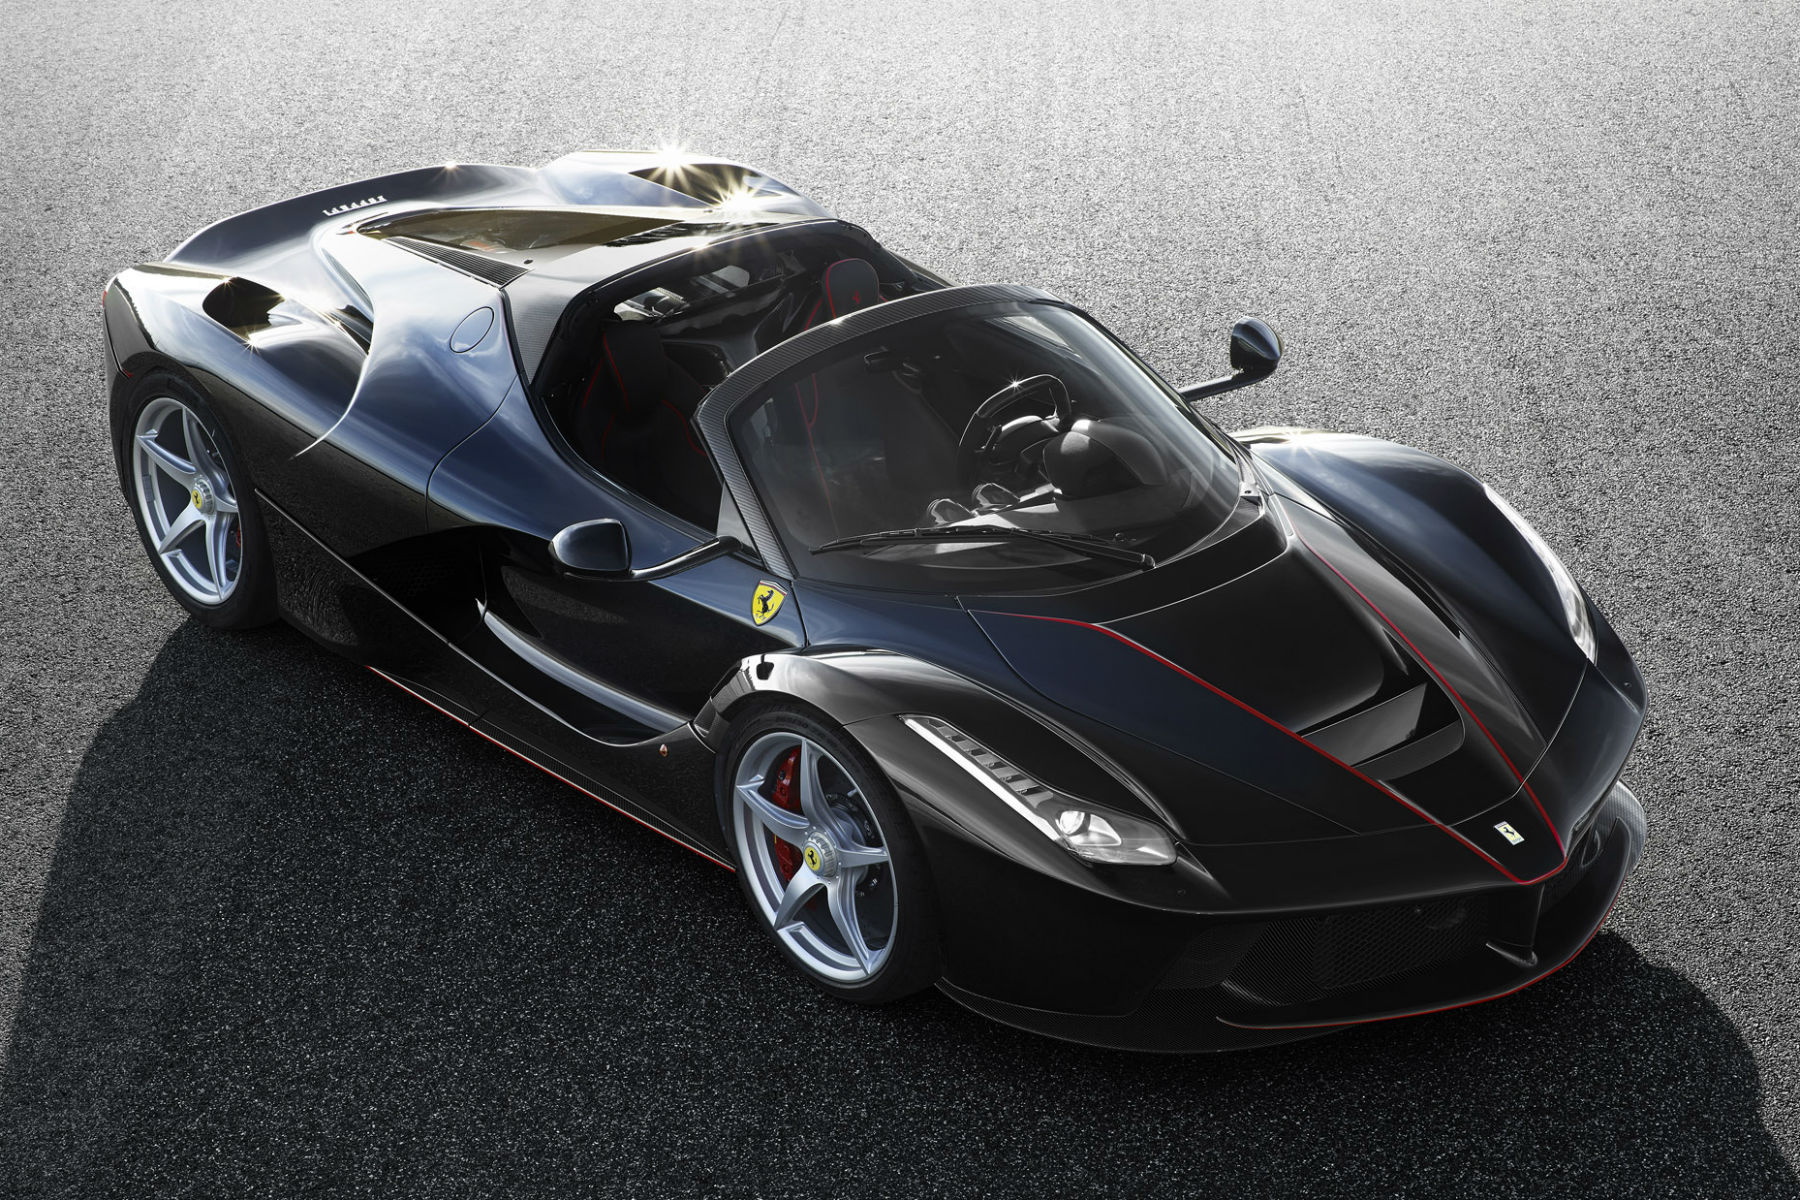 Official photos of open-top LaFerrari revealed: it's sold out already